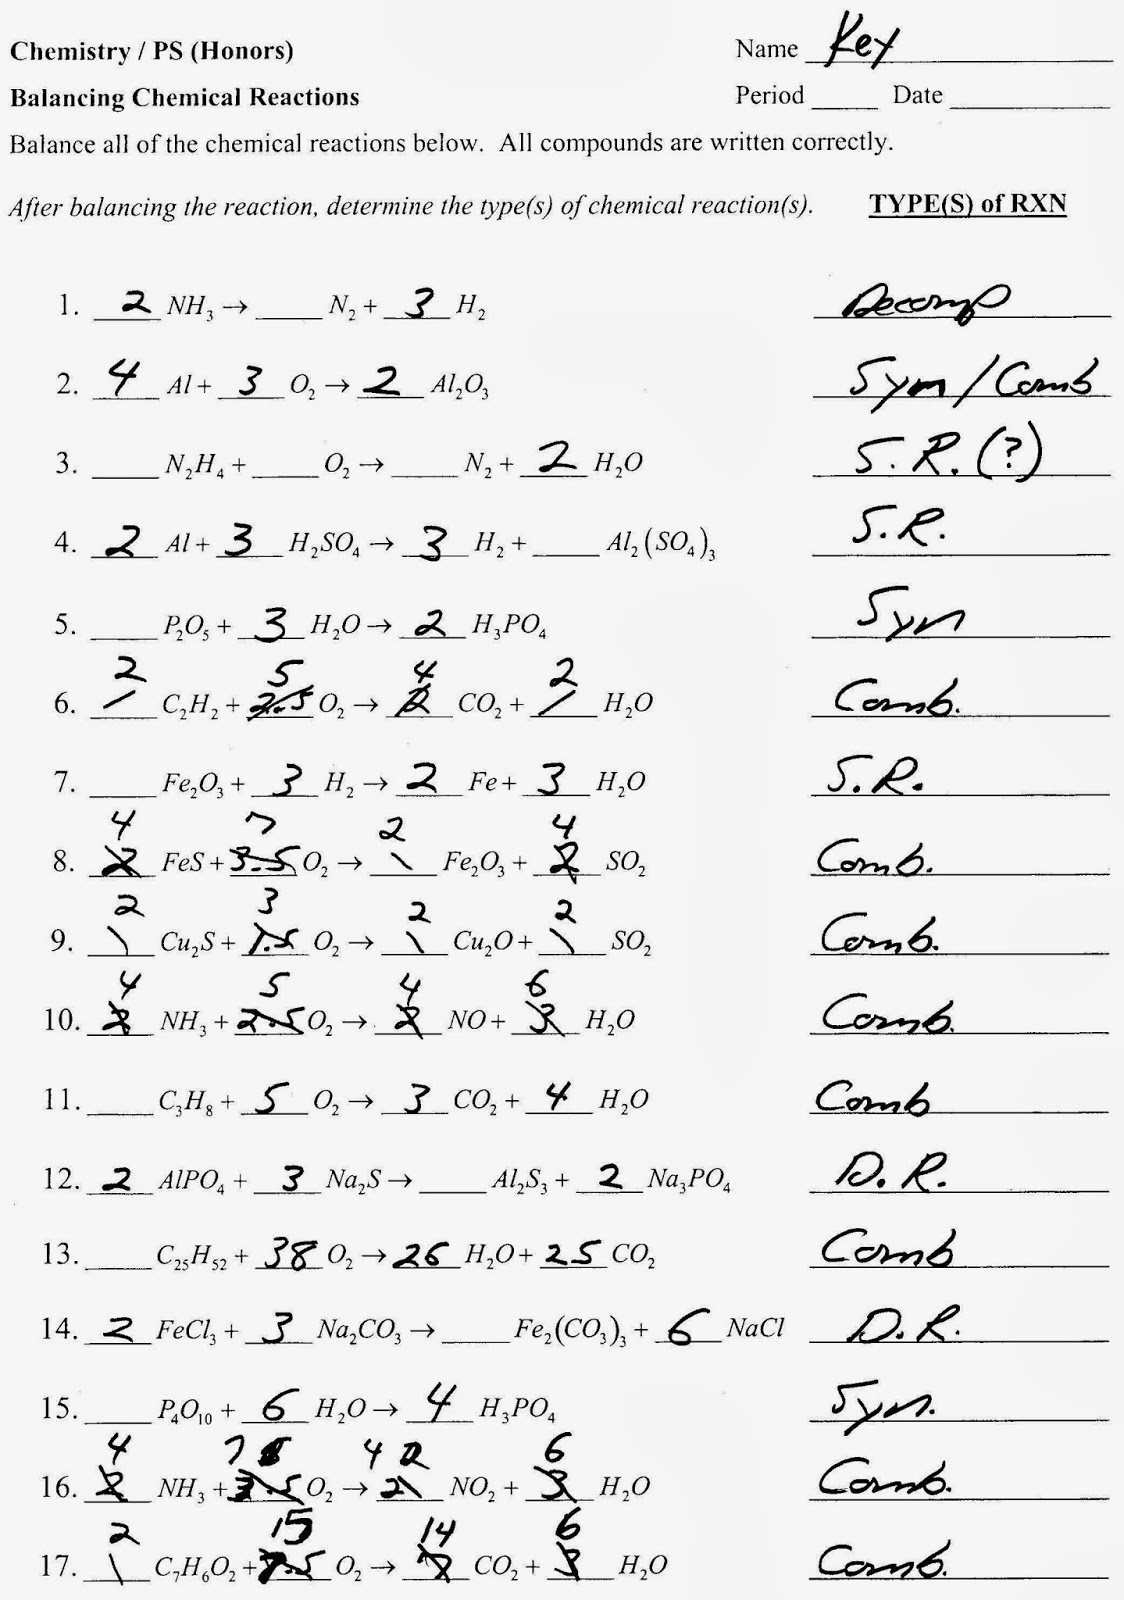 Aldiablosus  Terrific Balancing Chemical Equations Worksheets Balancing Chemical  With Interesting Balancing Chemical Equations Worksheet Answer Key On Chemistry Double With Astounding  Step Training Model Worksheet Also Self Respect Worksheets In Addition Basic Math Worksheets Pdf And Common Core Math Worksheets For Th Grade As Well As Multiples And Factors Worksheet Additionally Proportional Word Problems Worksheet From Letstalkhiphopus With Aldiablosus  Interesting Balancing Chemical Equations Worksheets Balancing Chemical  With Astounding Balancing Chemical Equations Worksheet Answer Key On Chemistry Double And Terrific  Step Training Model Worksheet Also Self Respect Worksheets In Addition Basic Math Worksheets Pdf From Letstalkhiphopus